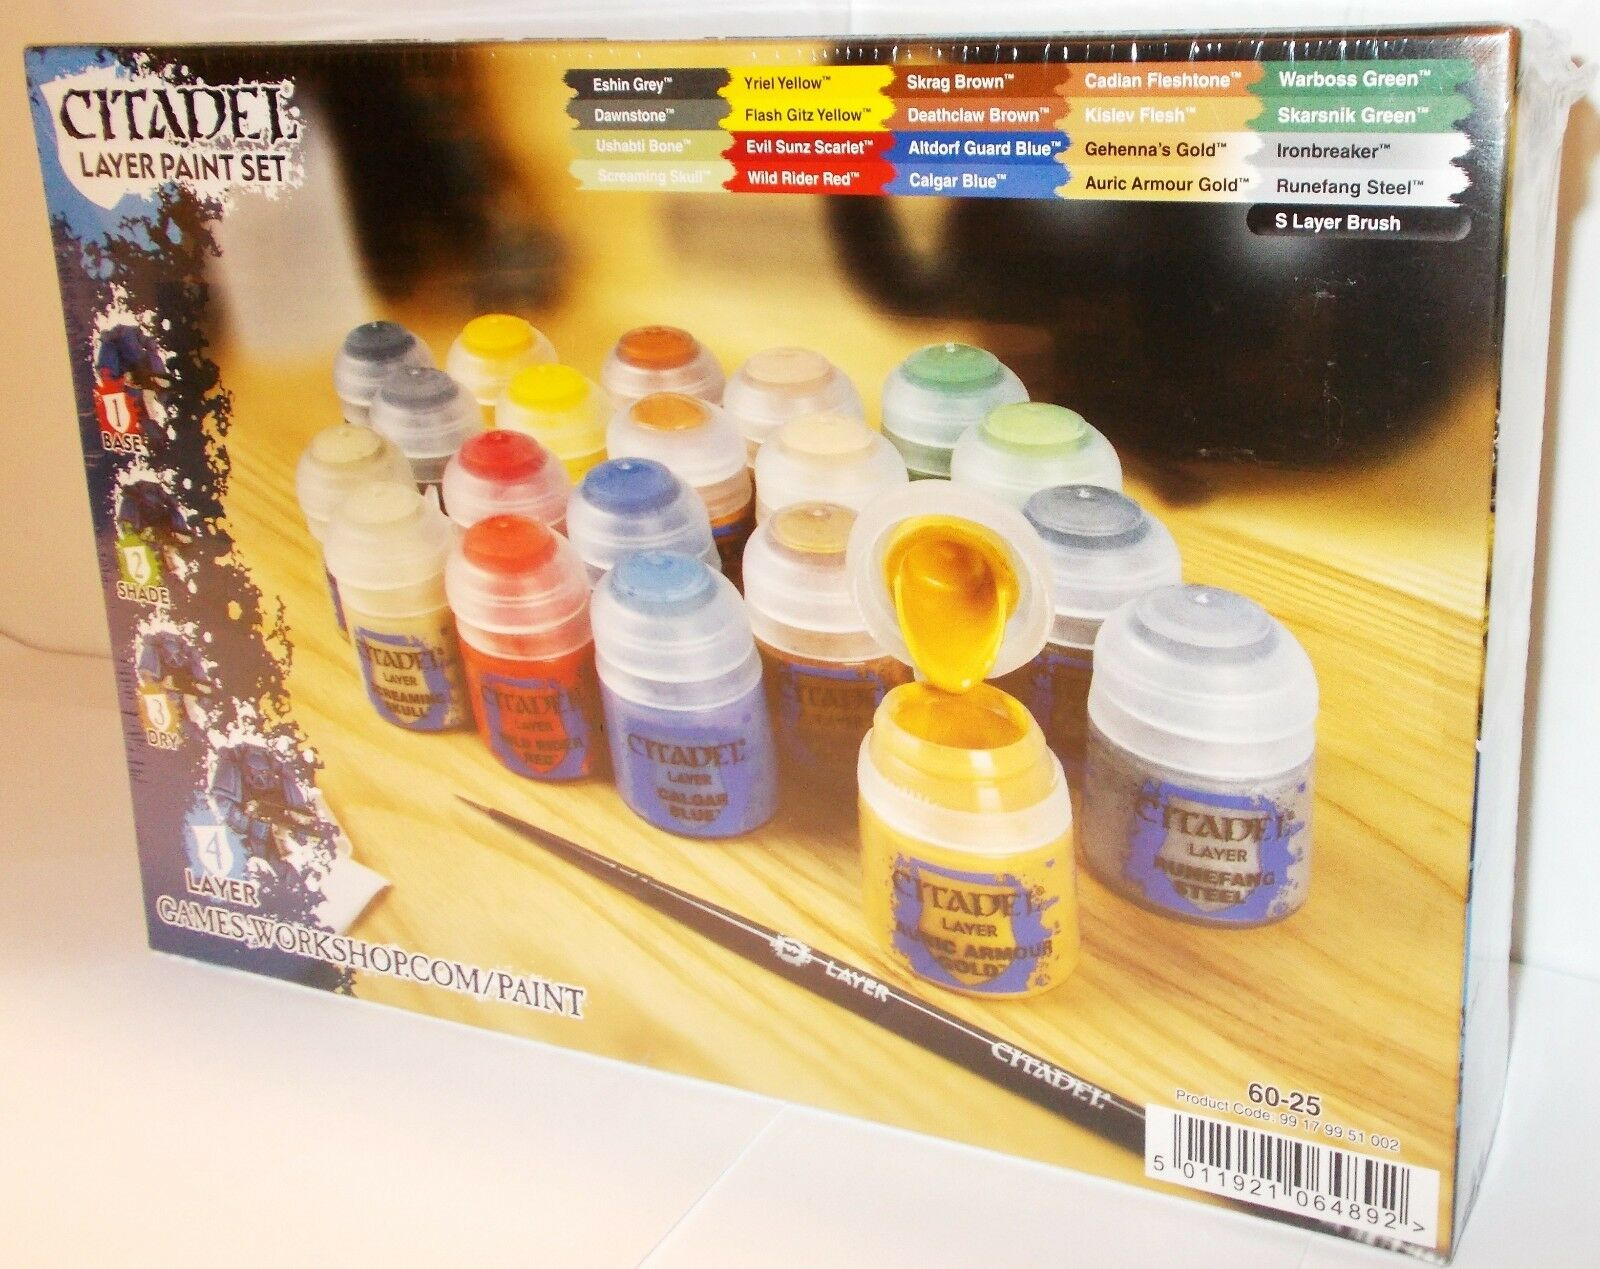 Games Workshop Citadel - 60-25 - Layer Paint Set - New (Wargaming)